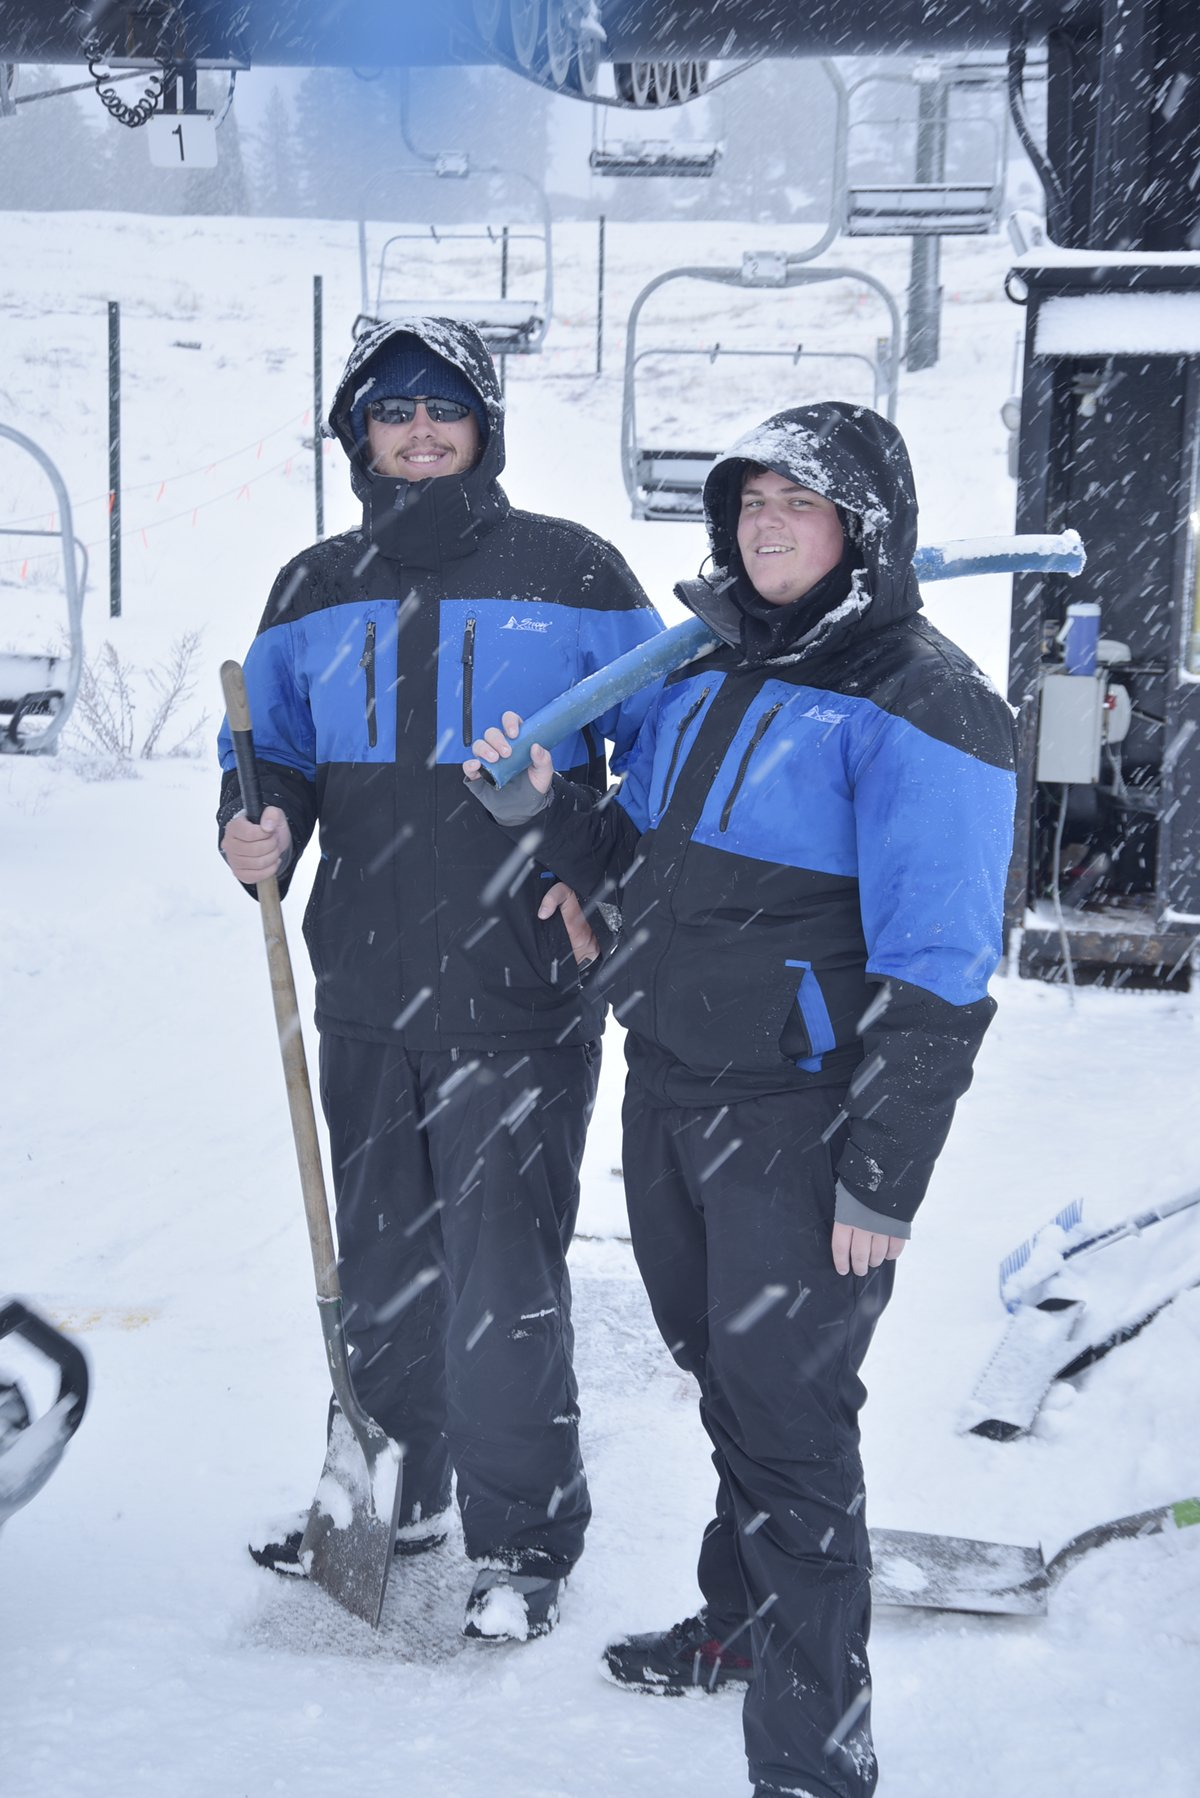 Two Snow Valley employees posing in front of ski lift smiling during snowfall